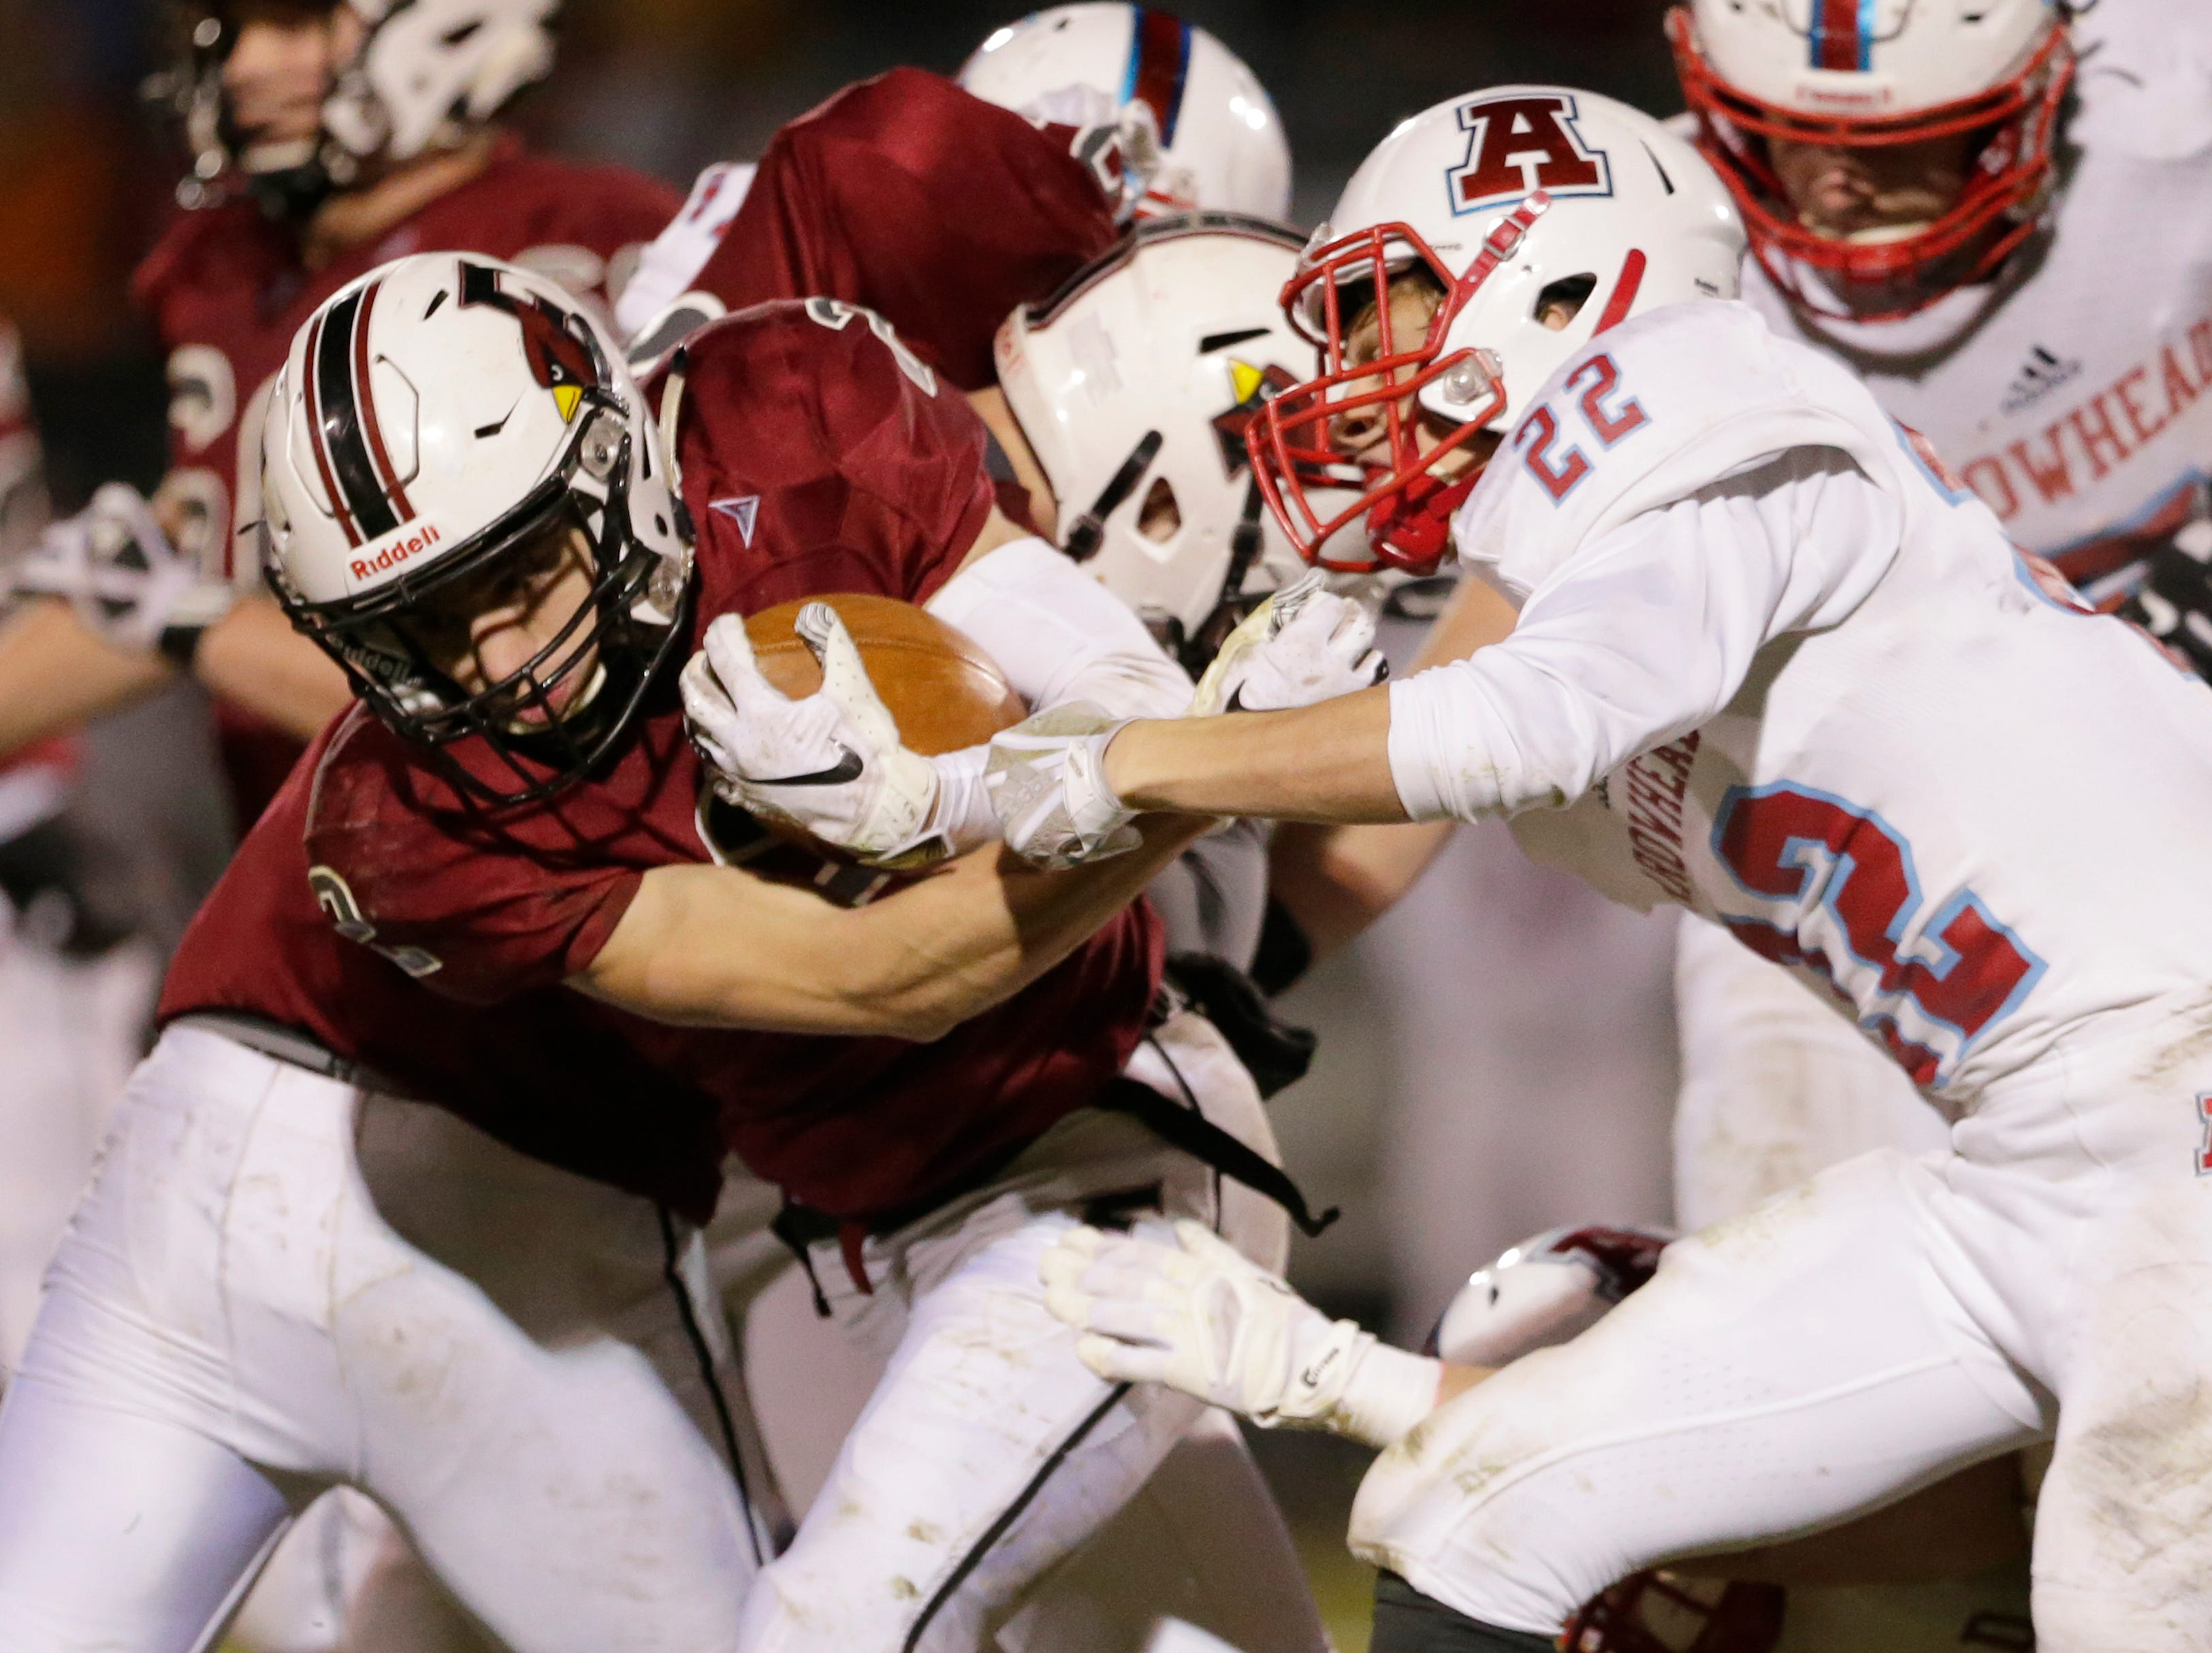 Fond du Lac's Eben Sauer runs the ball during their game.  Fond du Lac Cardinals played Arrowhead Warhawks in WIAA football playoff sectionals, Friday, Oct. 26, 2018, at Fruth Field in Fond du Lac.  Fond du Lac won 28 - 22.Joe Sienkiewicz/USA Today NETWORK-Wisconsin